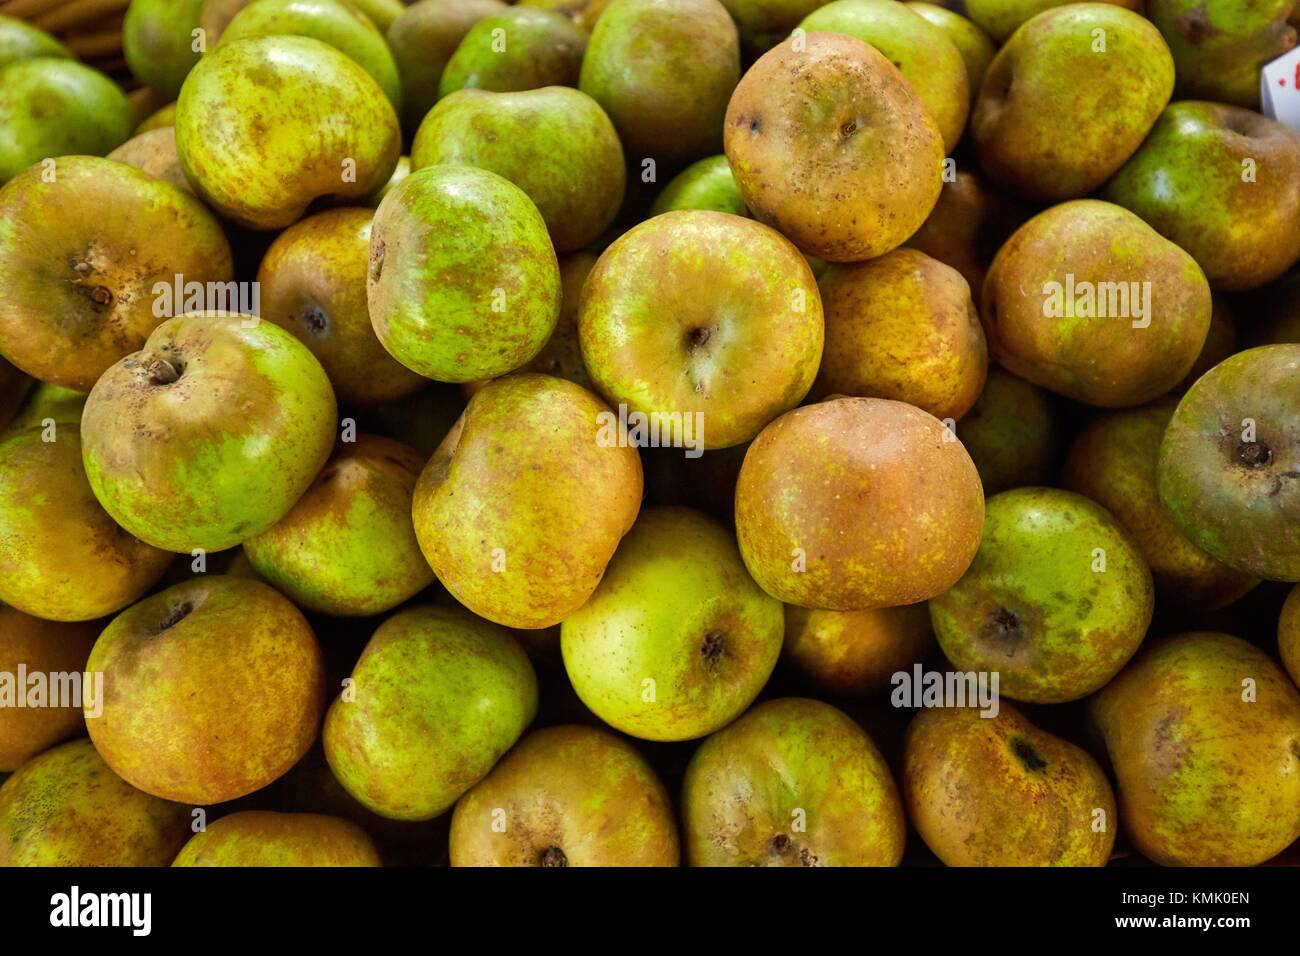 Reineta apple, Ordizia Market, Special Christmas market, Ordizia, Gipuzkoa, Basque Country, Spain, Europe - Stock Image